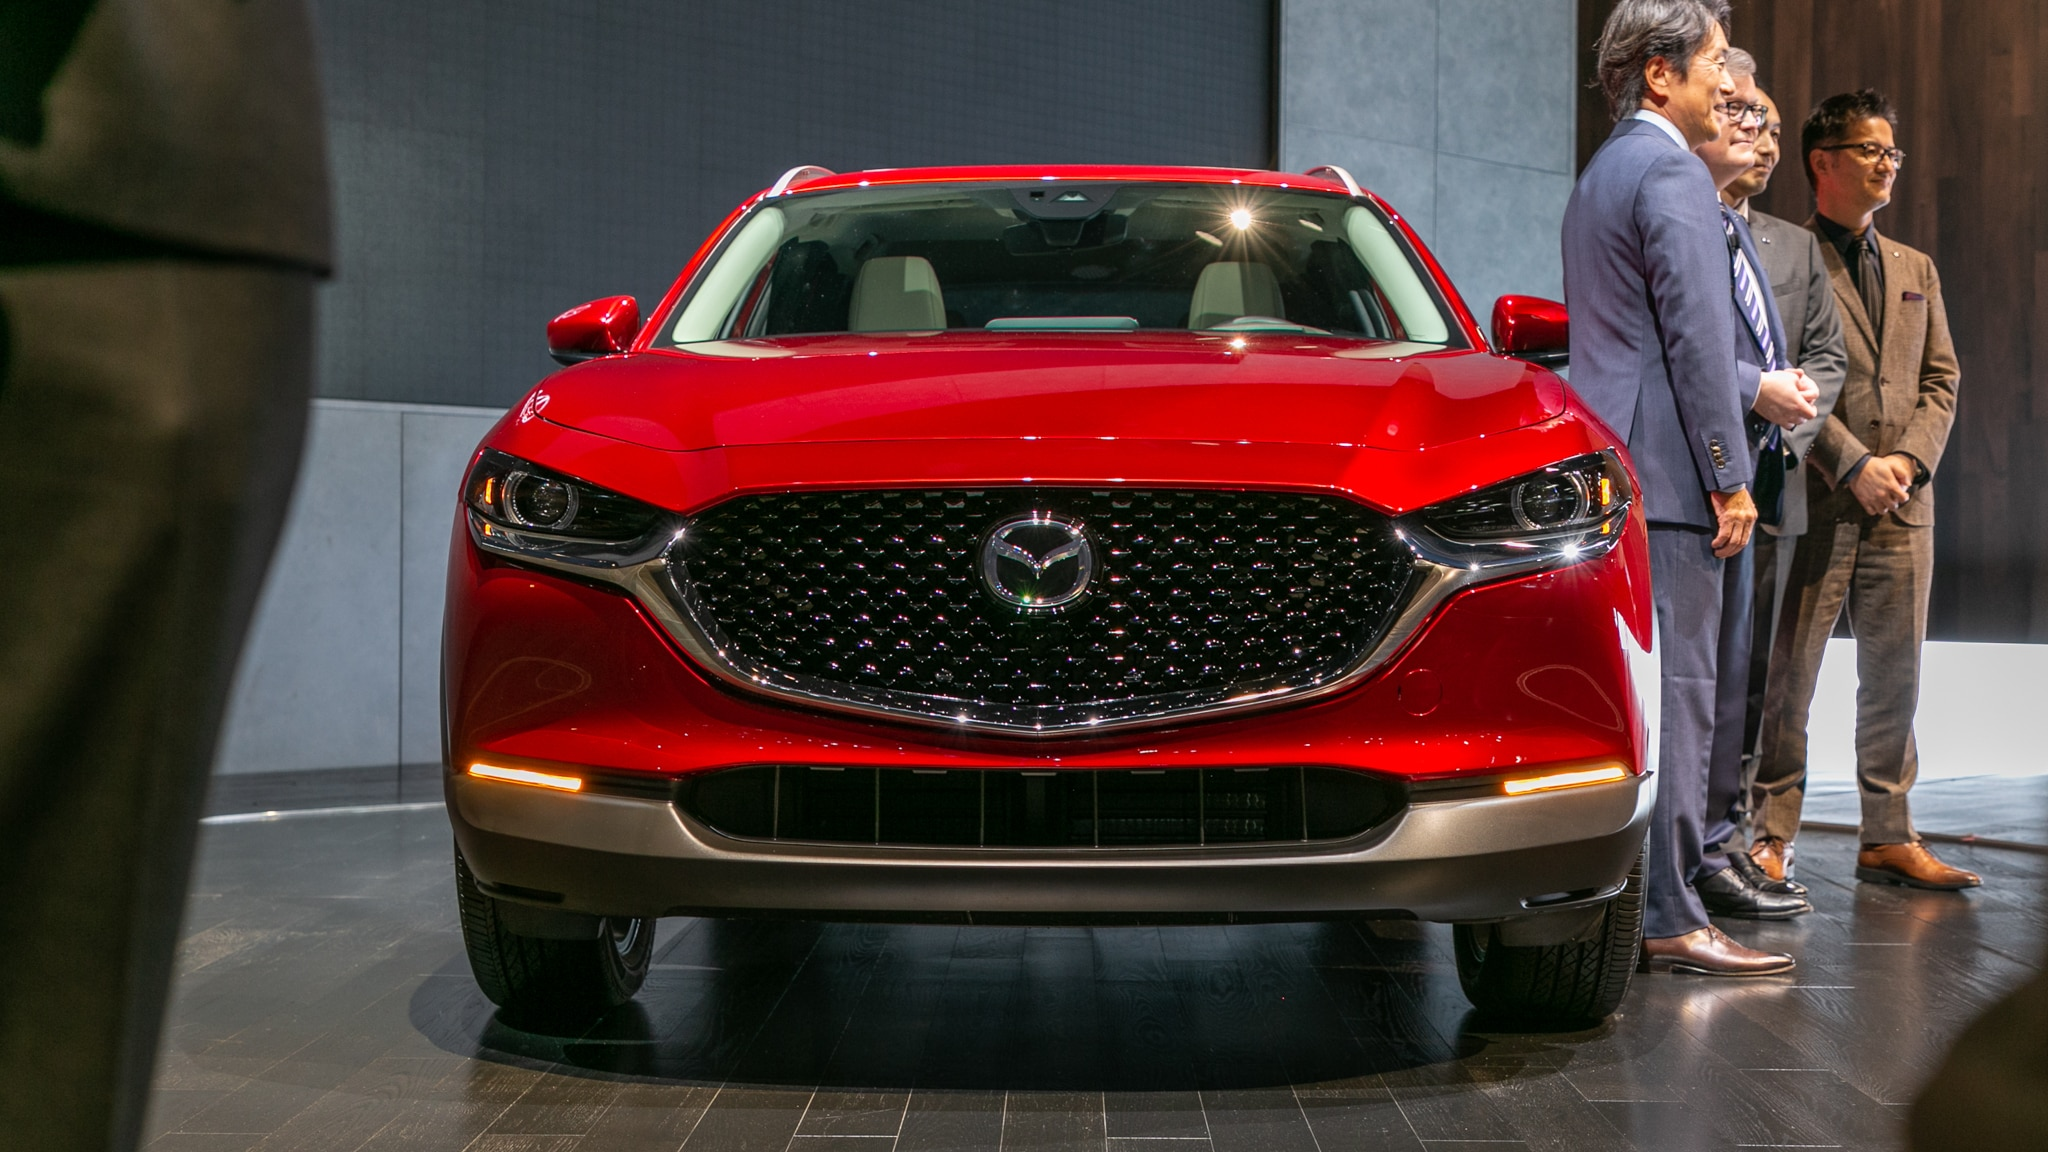 Meet The 2020 Mazda Cx 30 A New Crossover Between The Cx 3 And Cx 5